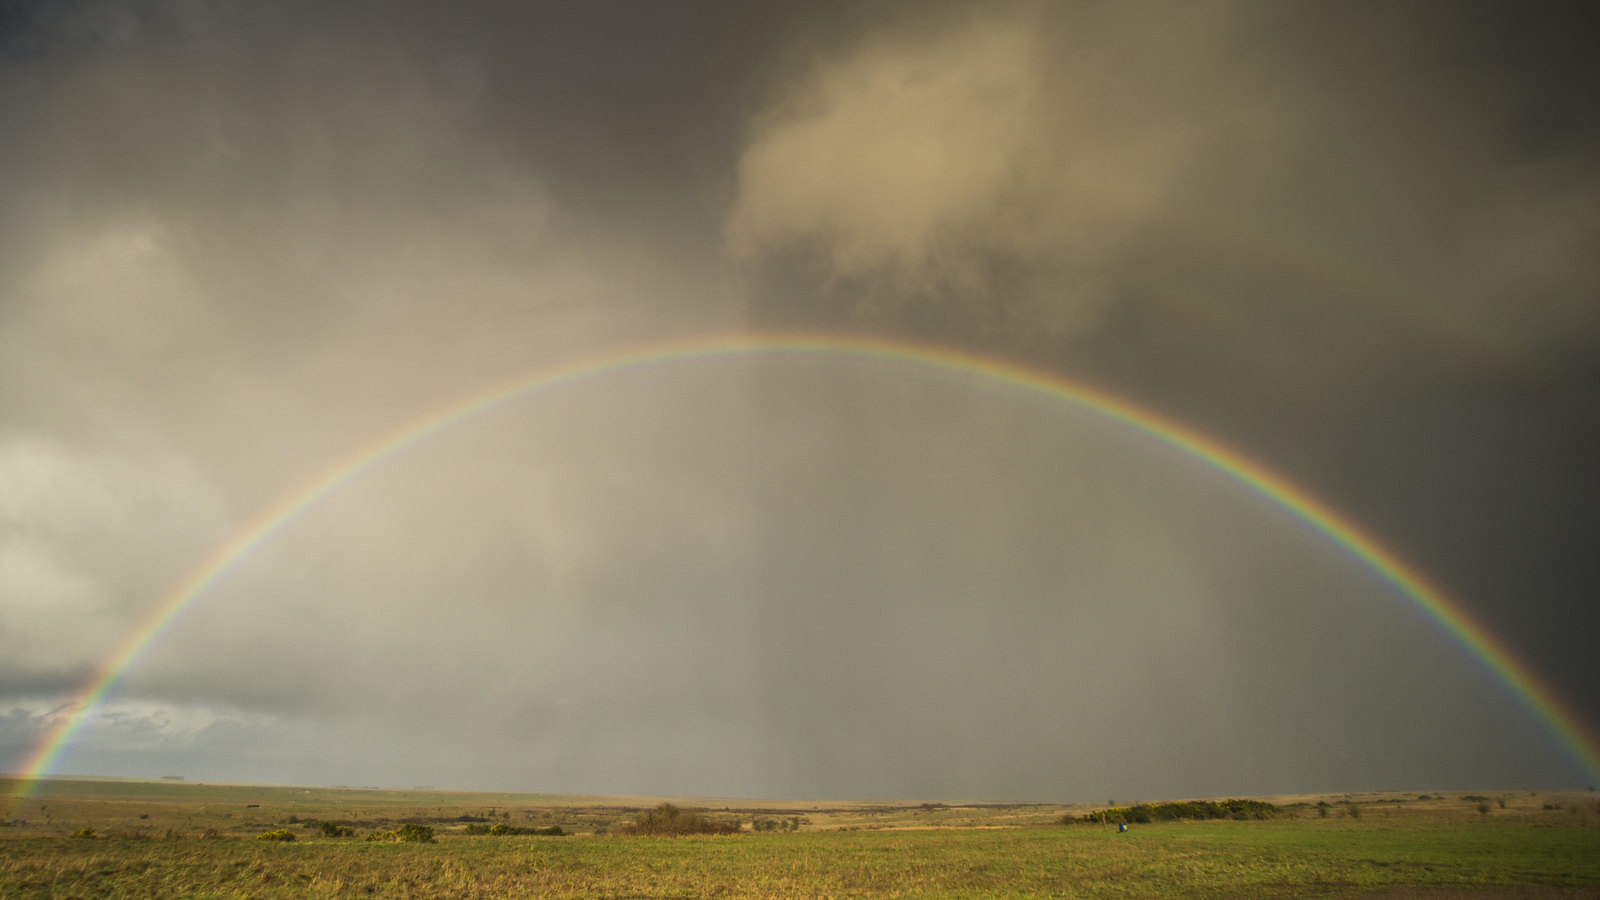 A full rainbow over the Plain